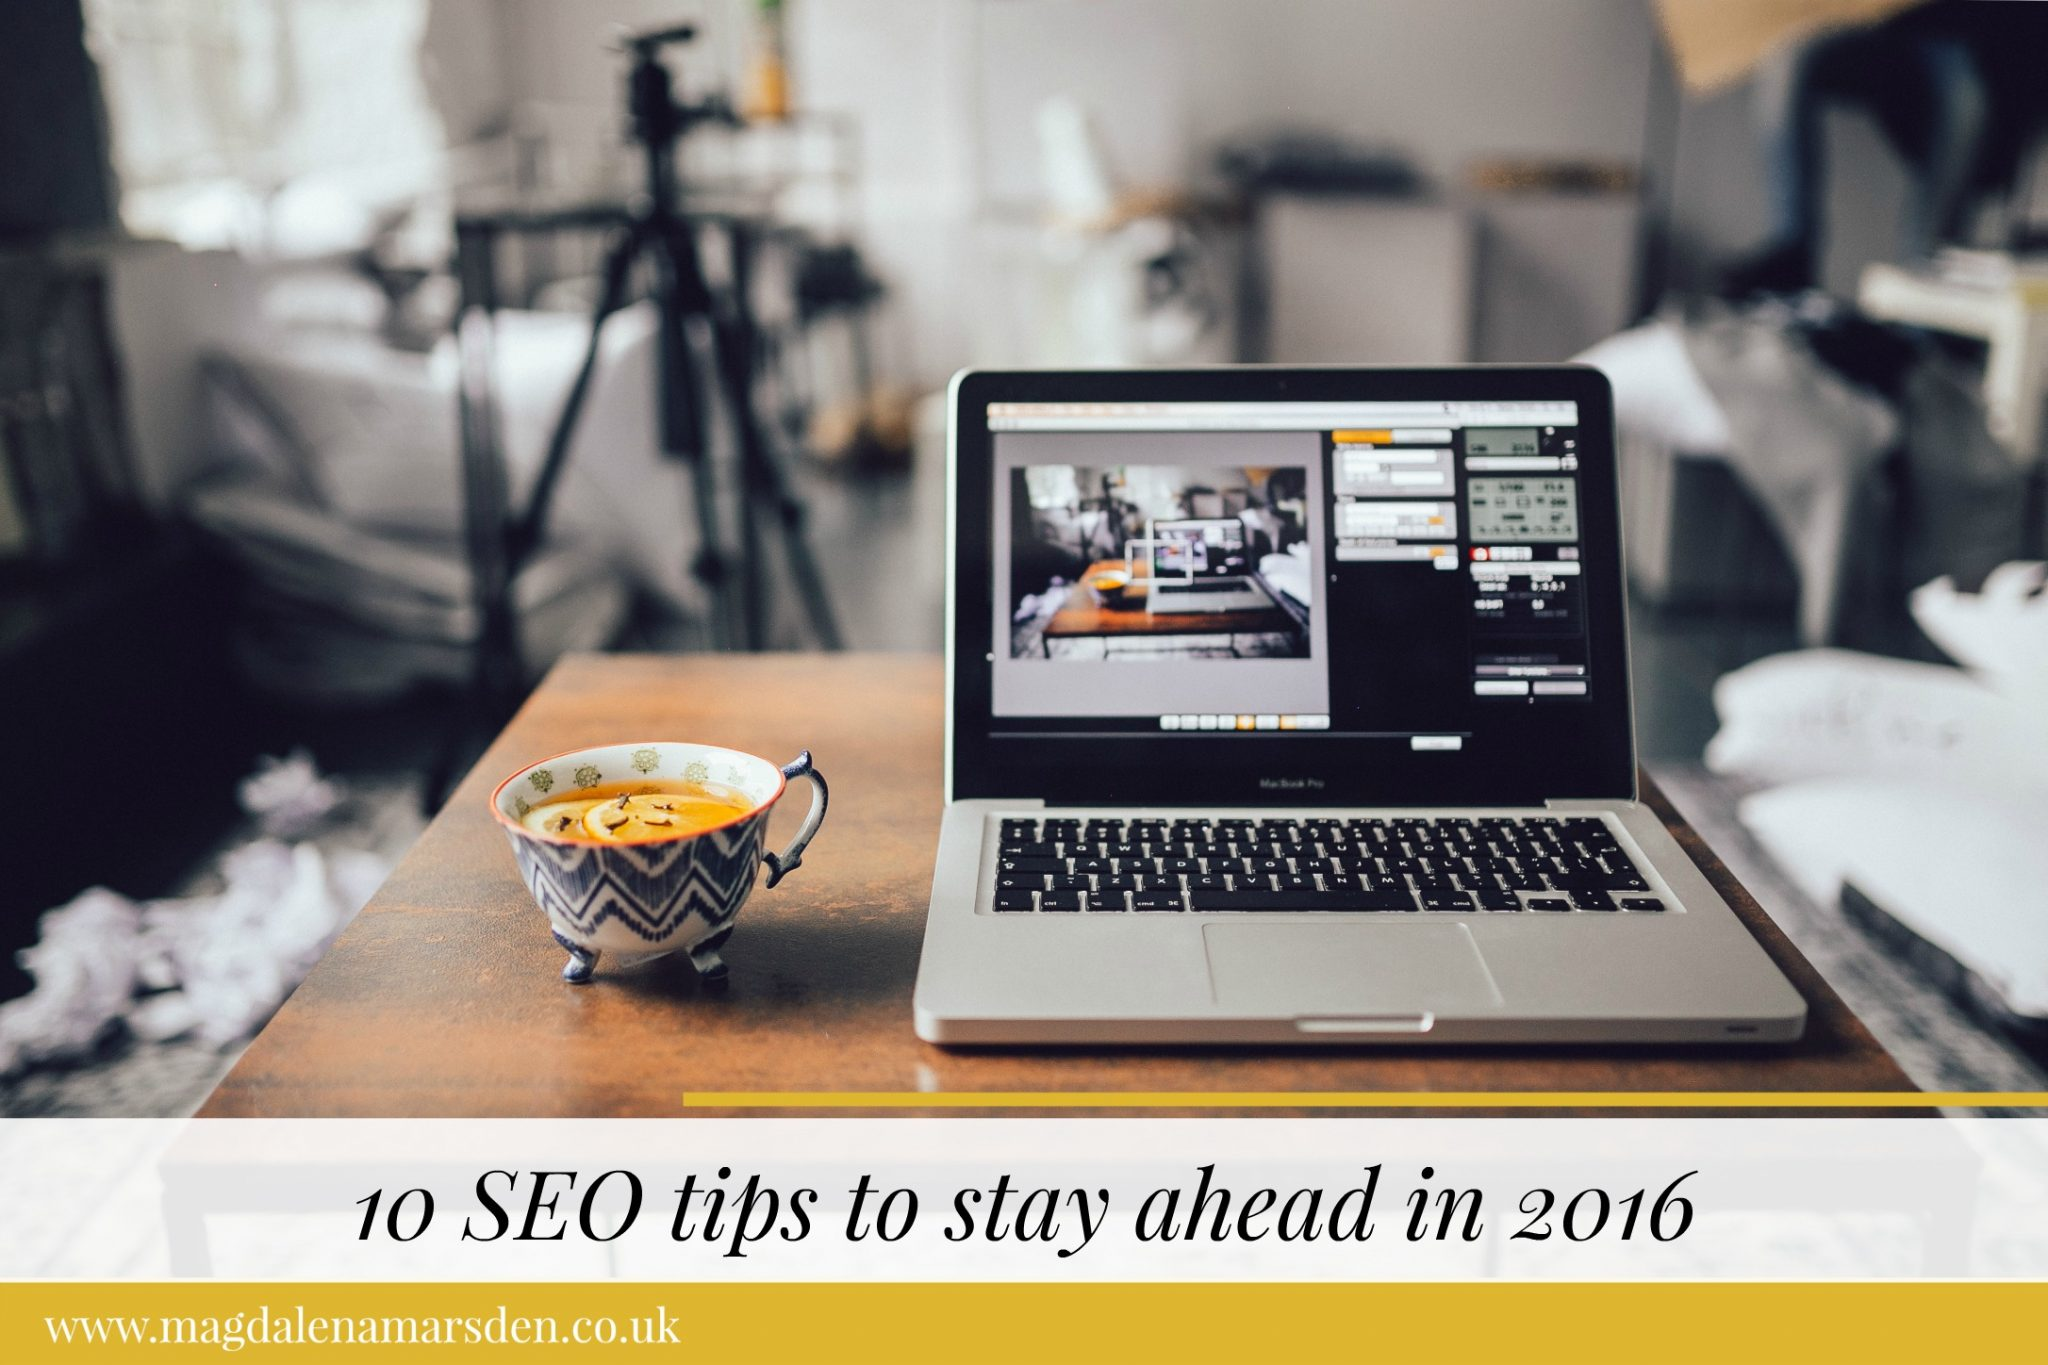 10 seo tips to stay ahead in 20161